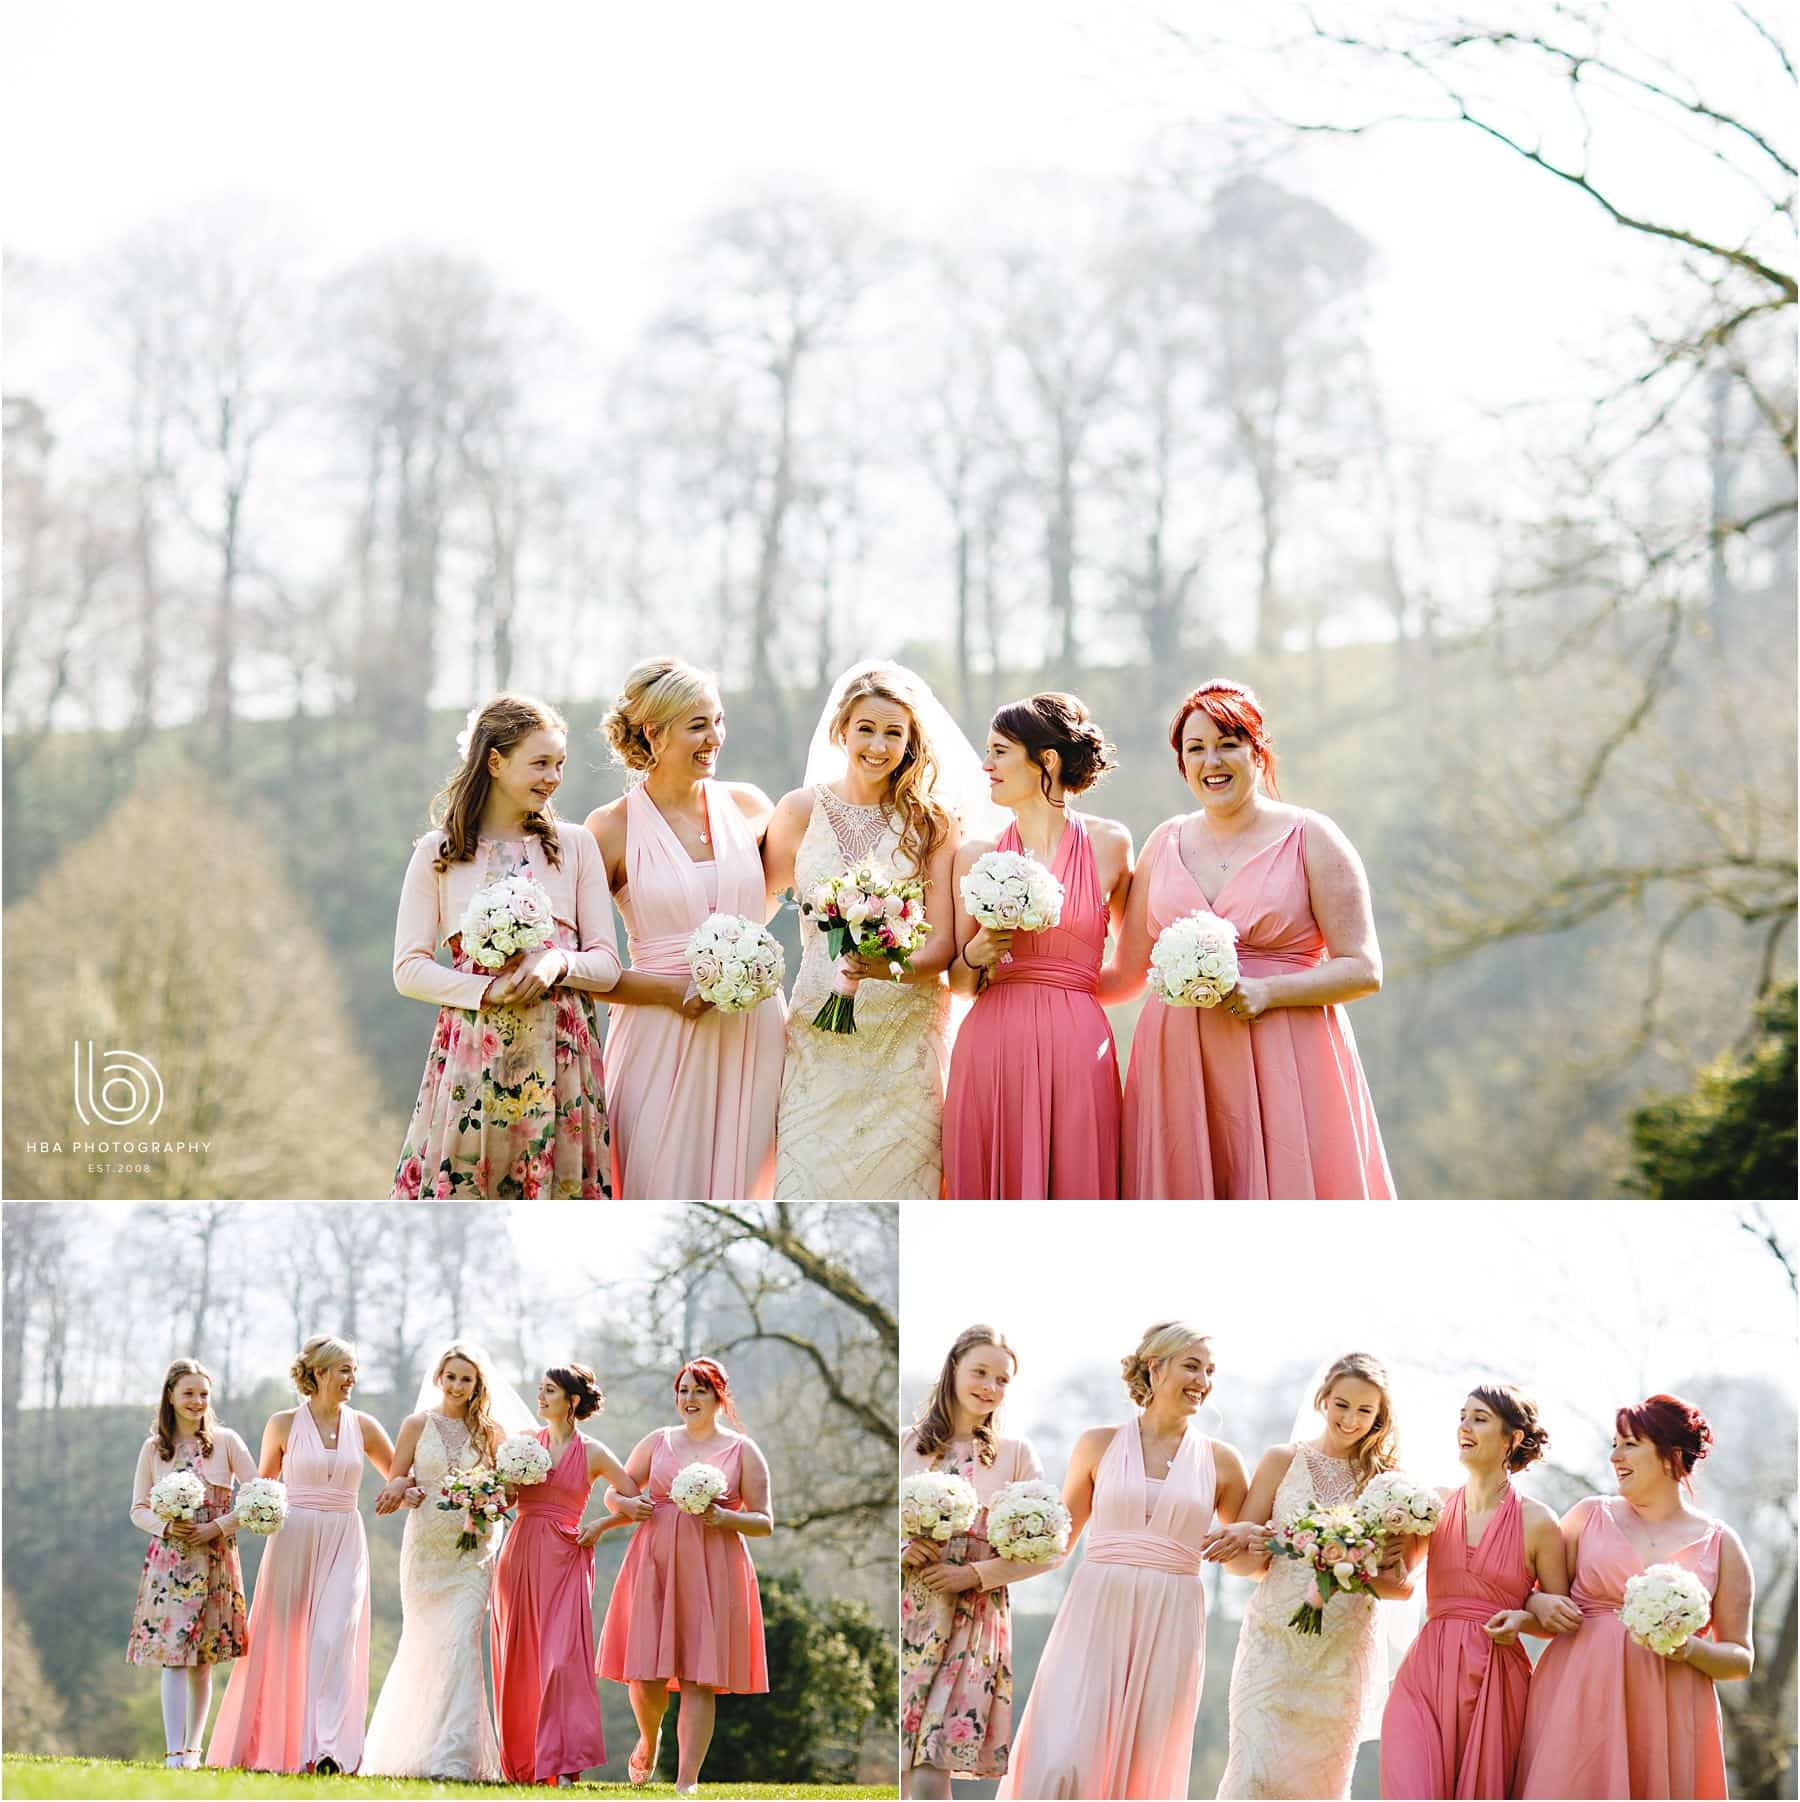 the bride and her bridesmaids at Ilam Hall